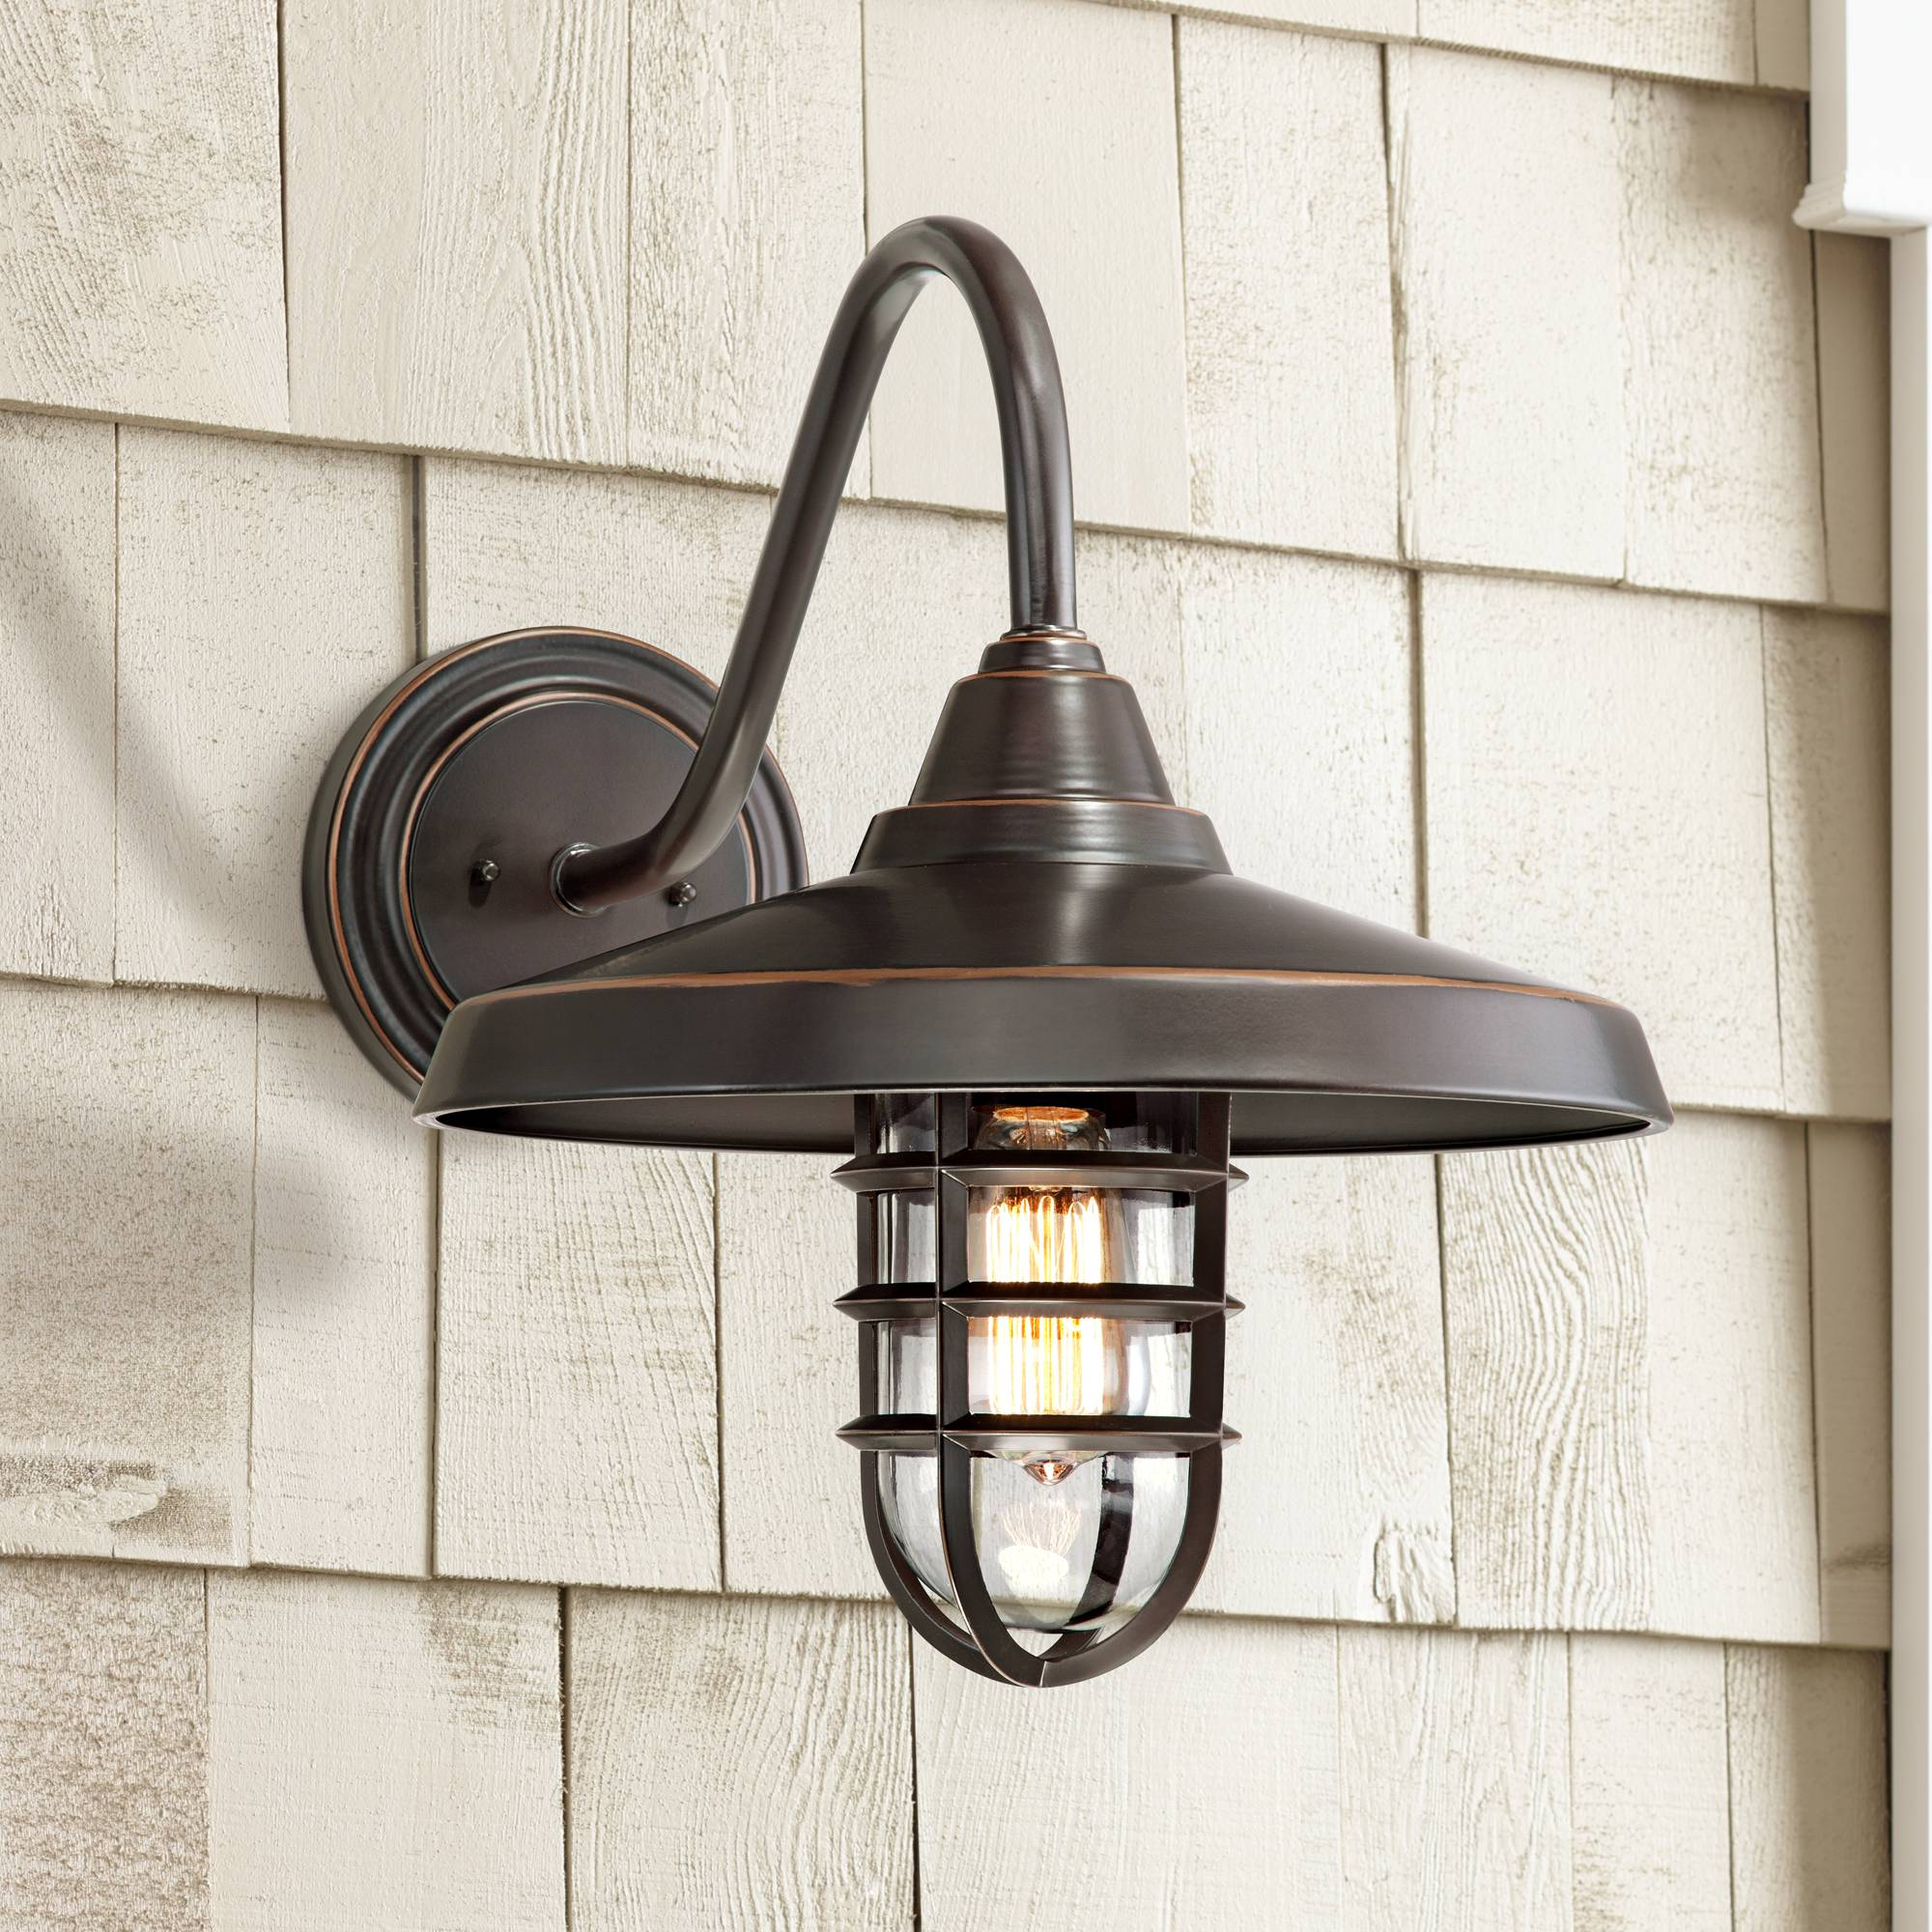 Details About Outdoor Barn Light Fixture Bronze 16 3 4 For Exterior House Porch